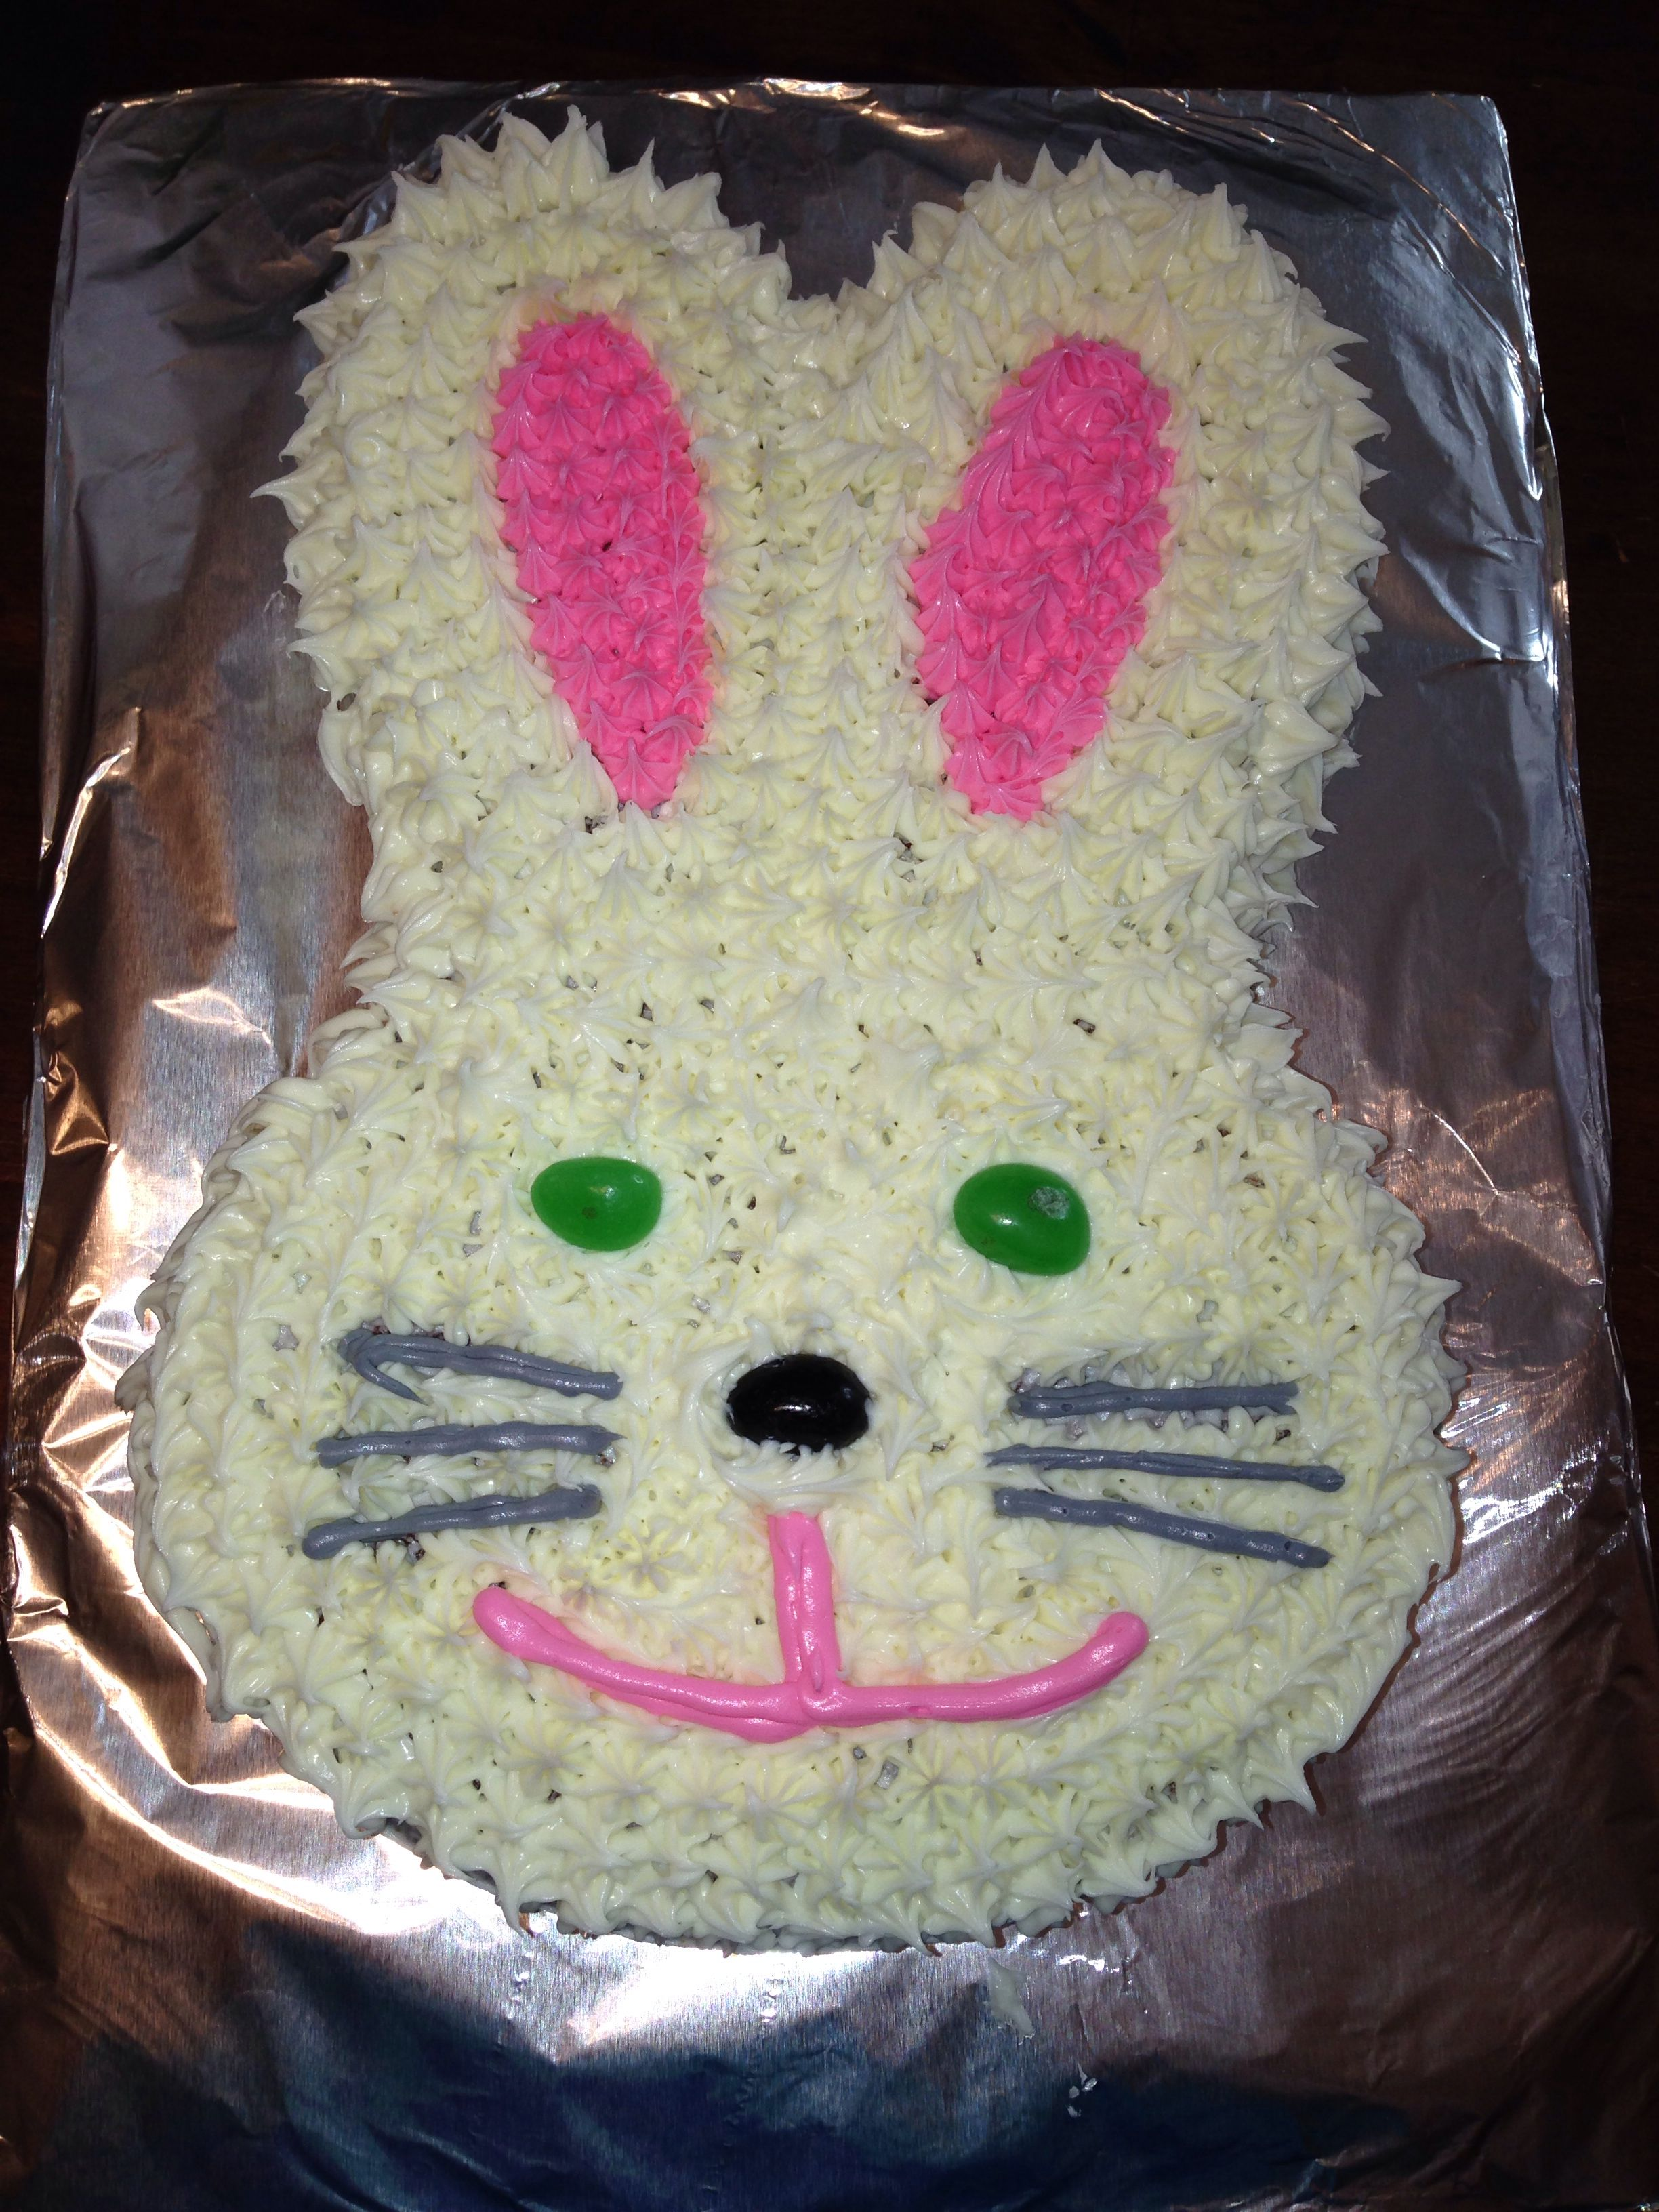 Easter Cake Decorations Pinterest : Bunny cake for Easter Cake Decorating Pinterest